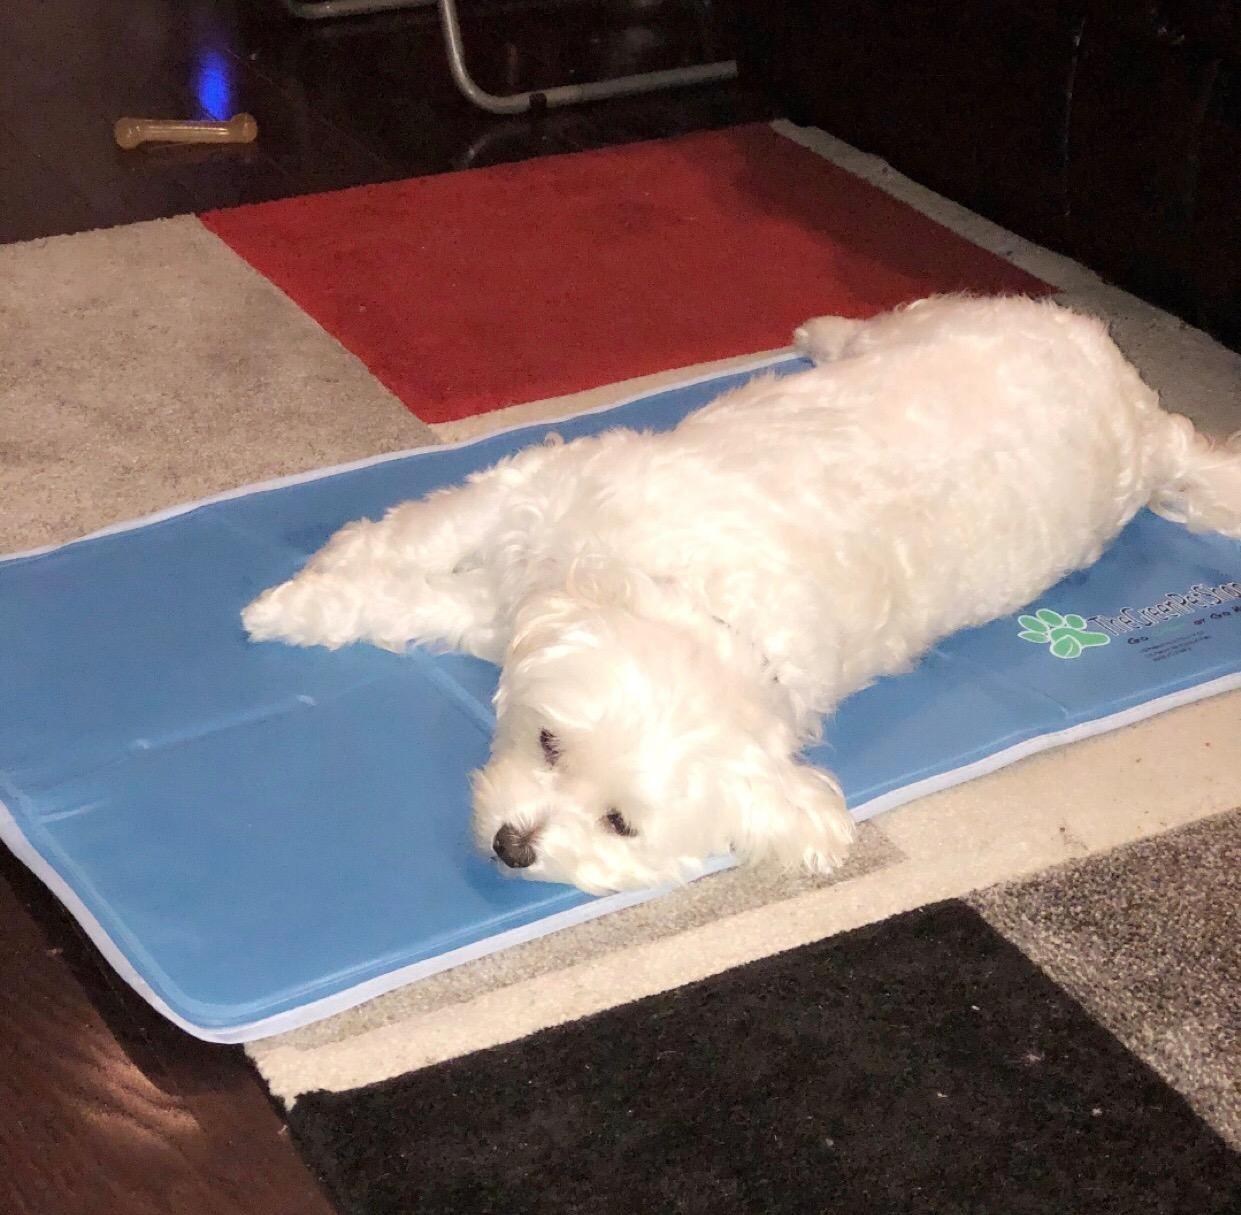 The mat, which is large enough for a small dog to lay his entire body down on it